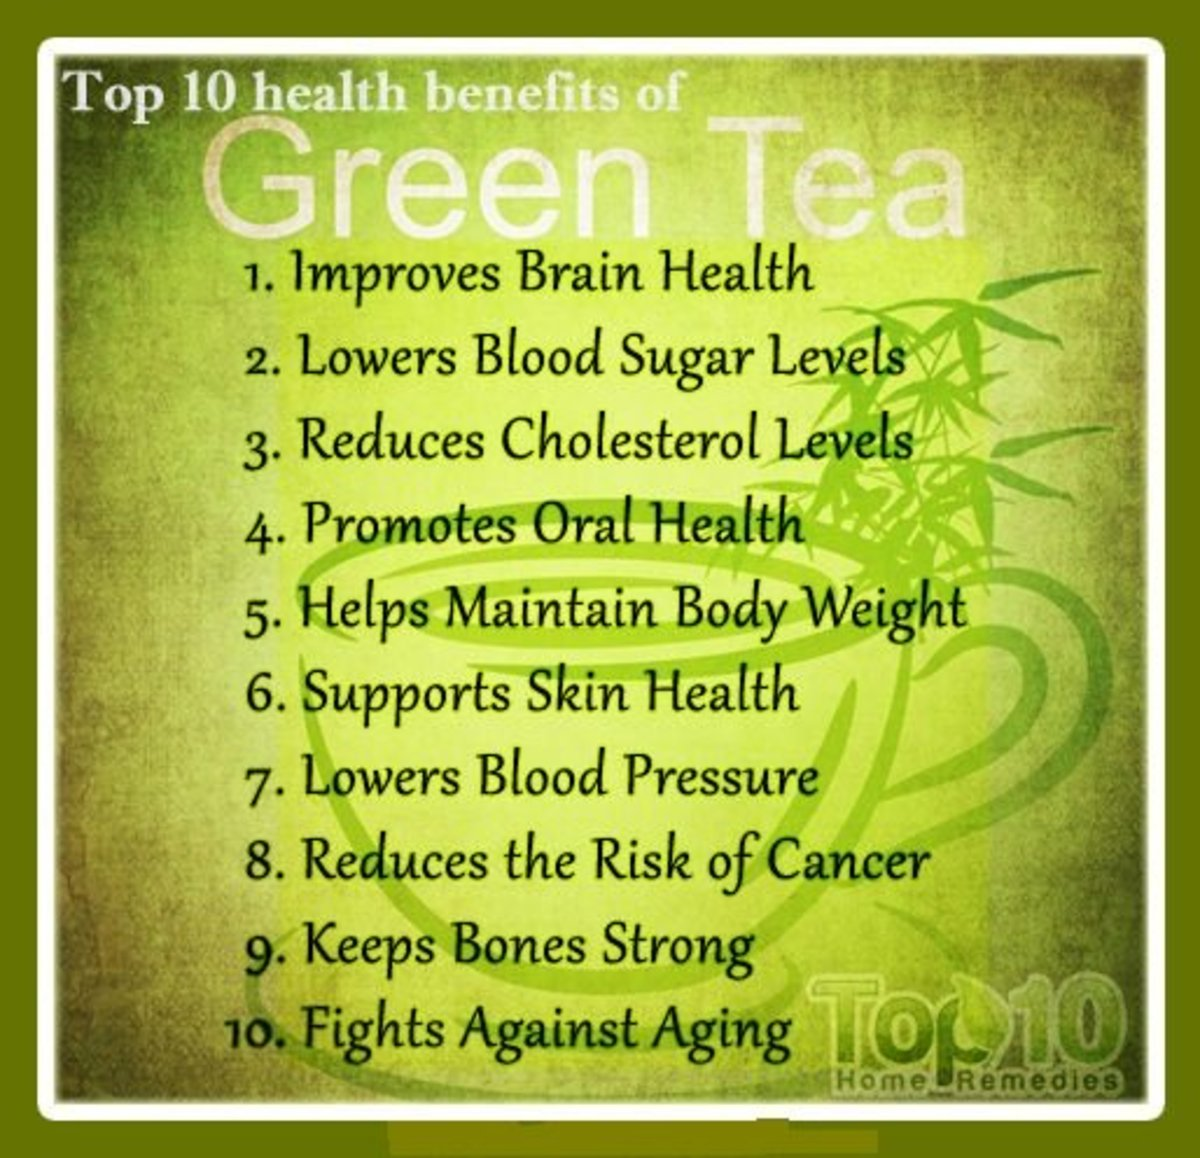 Green tea has many health benefits beyond improving memory and preventing dementia.